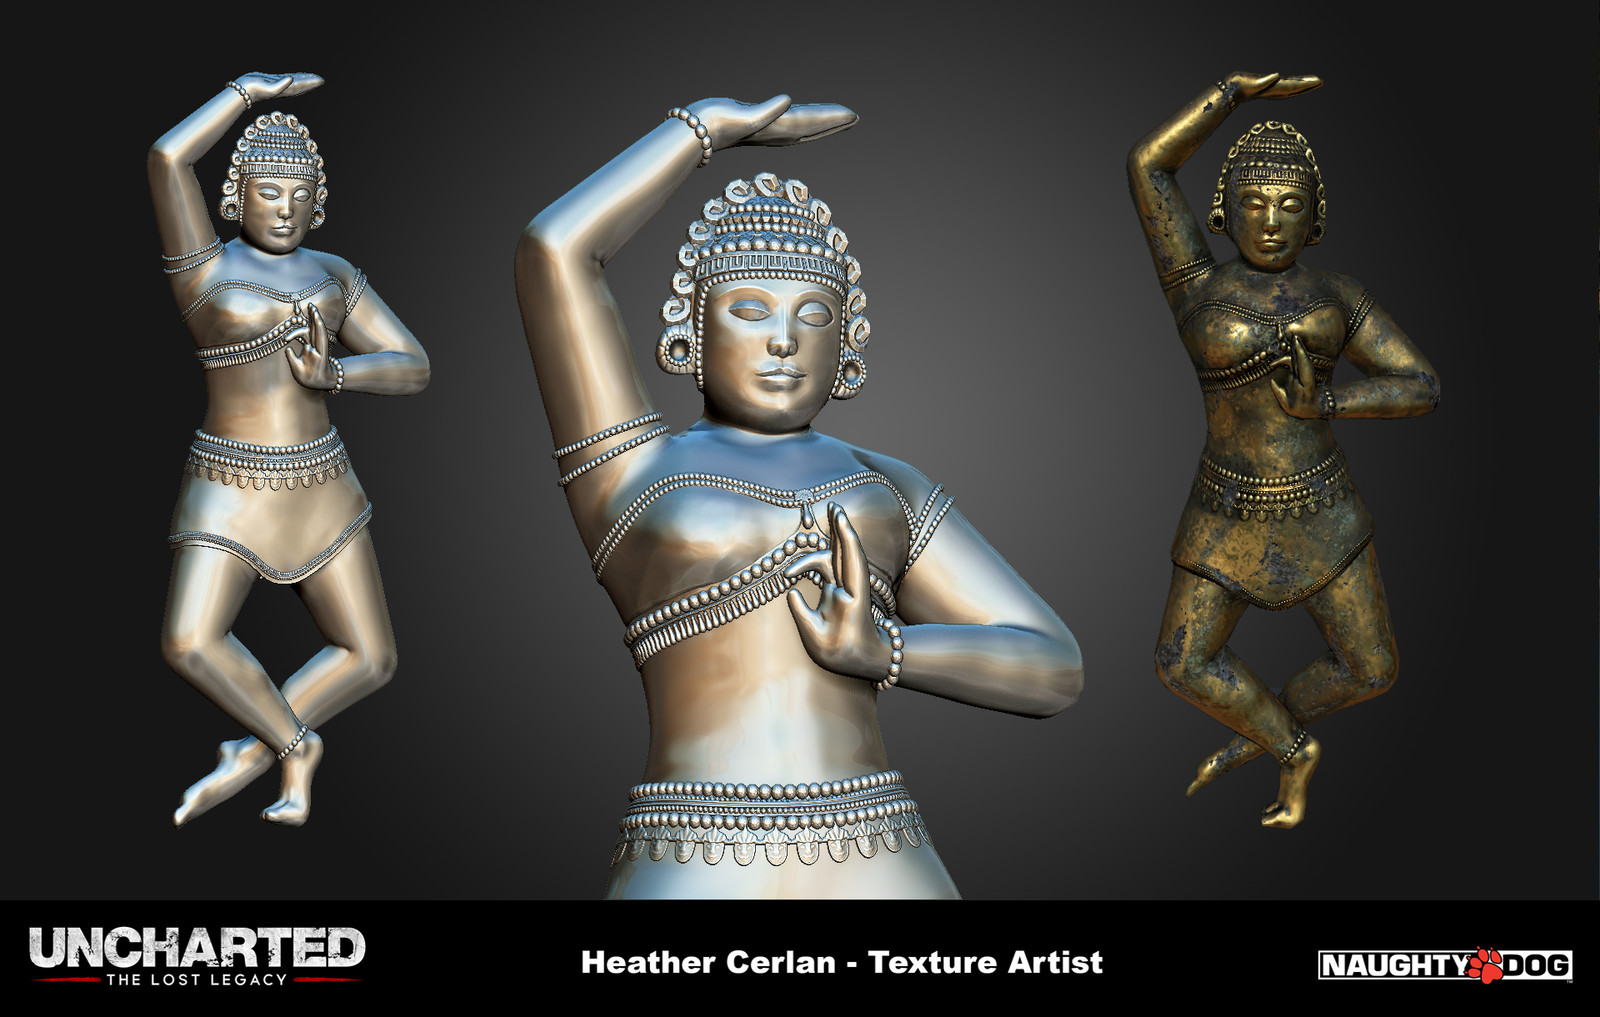 Another female statue based on the Hoysala style.